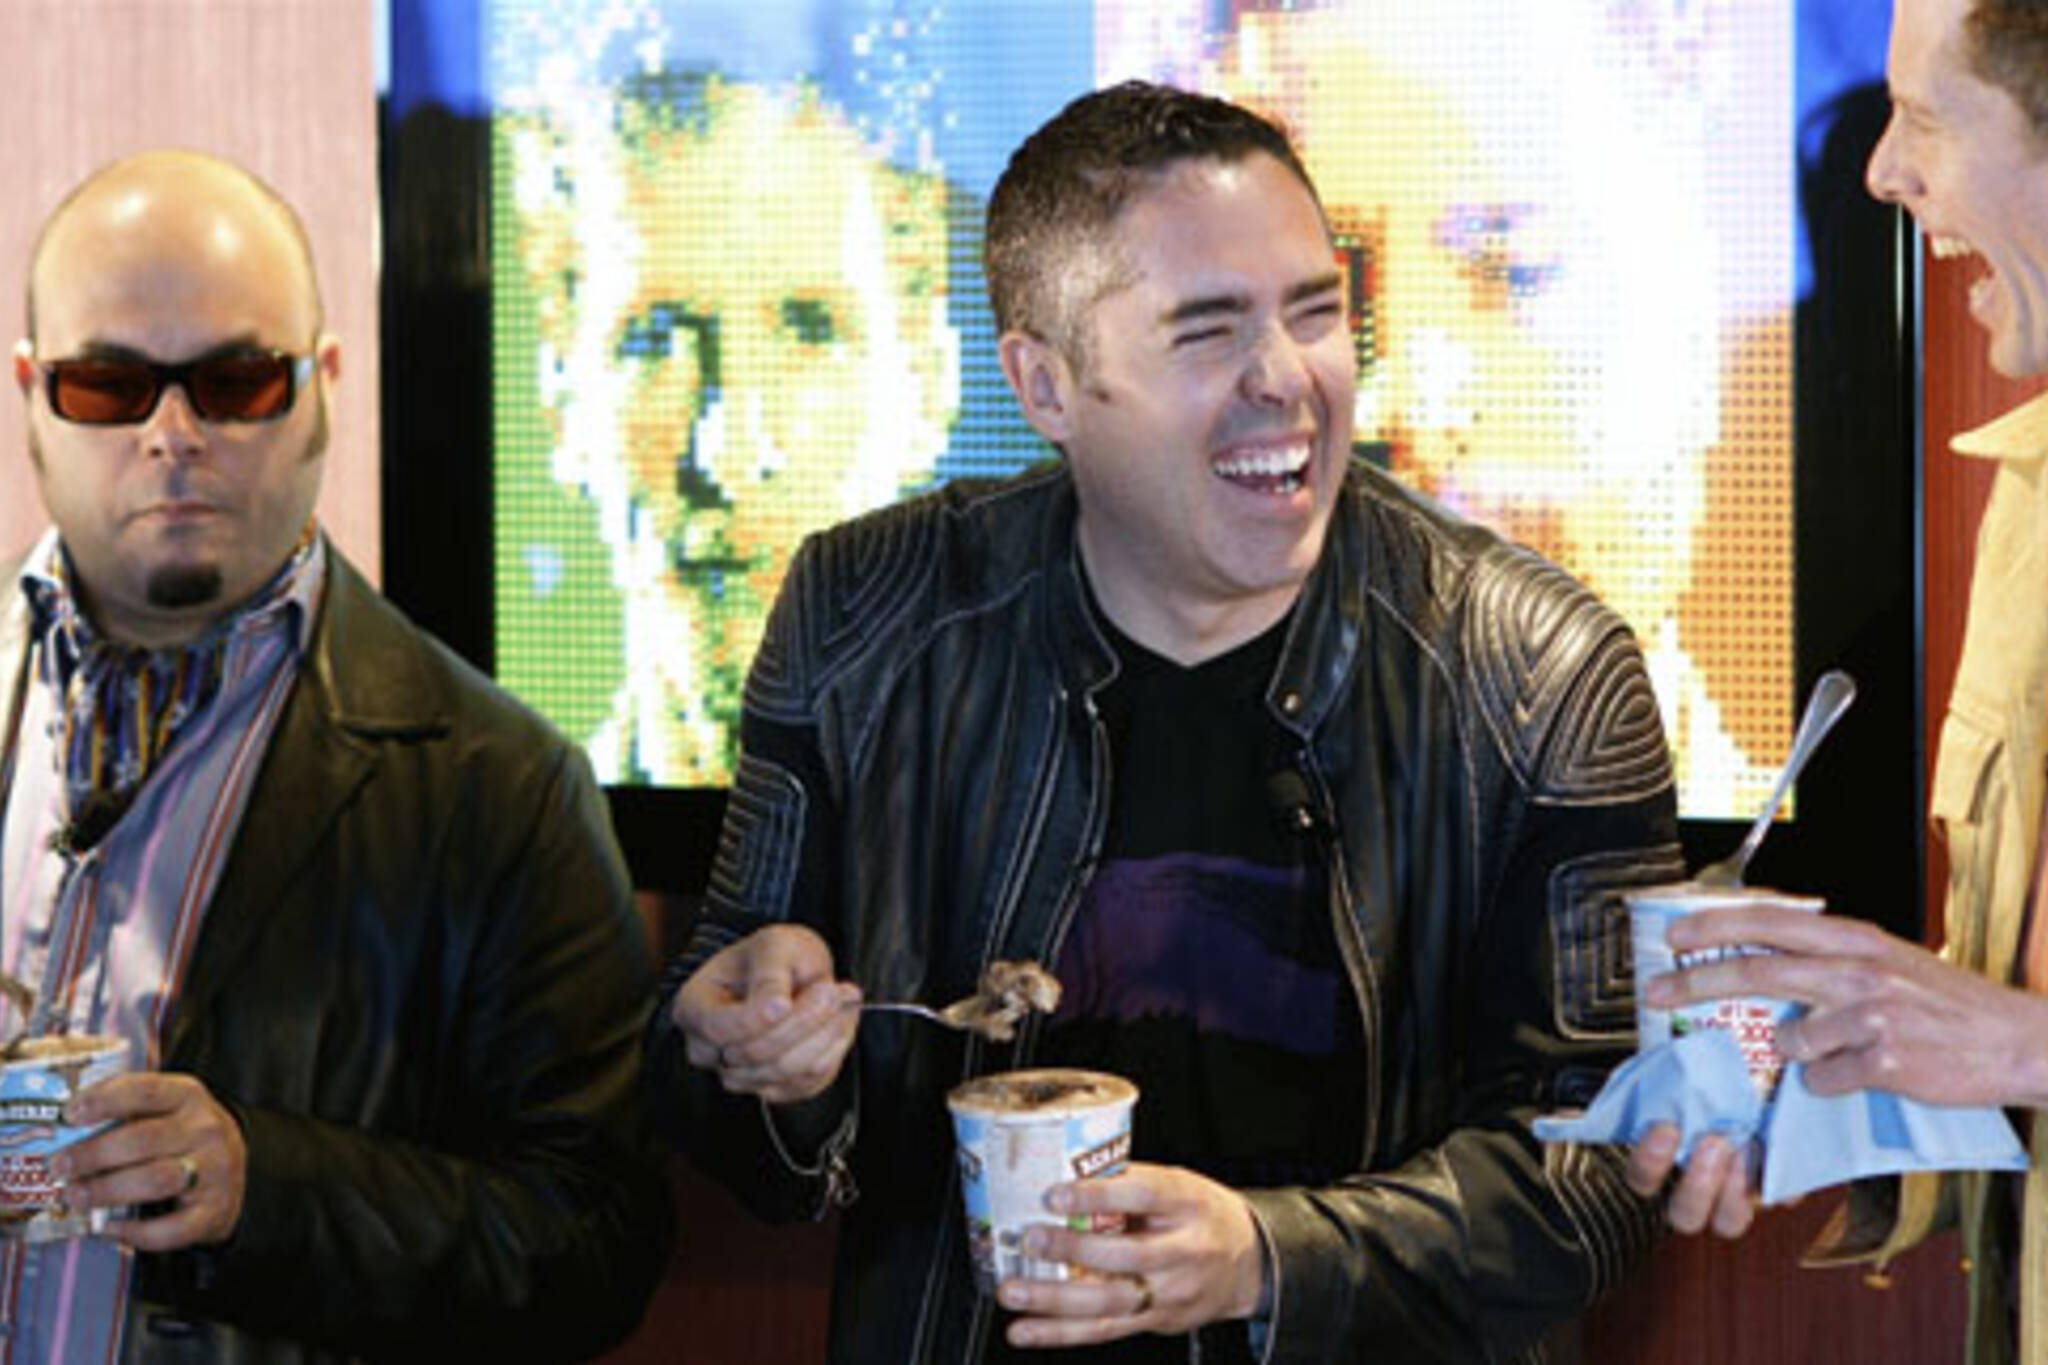 Barenaked Ladies unveil new Ben & Jerry's ice cream flavour